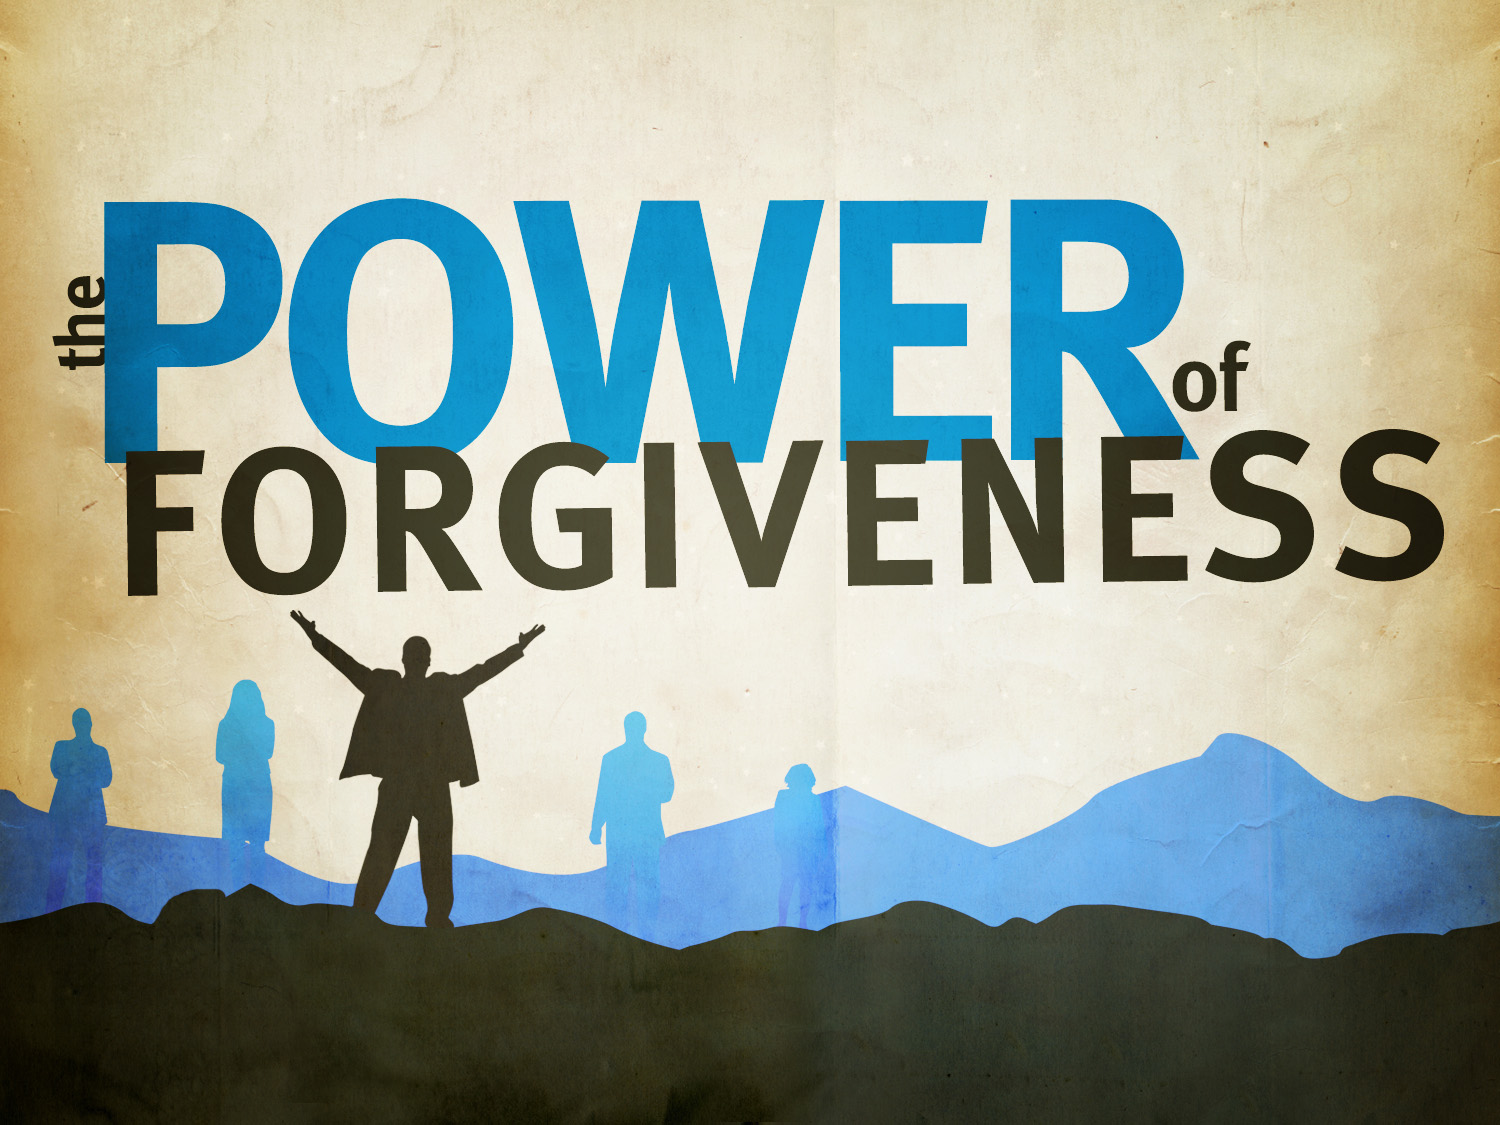 What in the World?: The politics of forgiveness